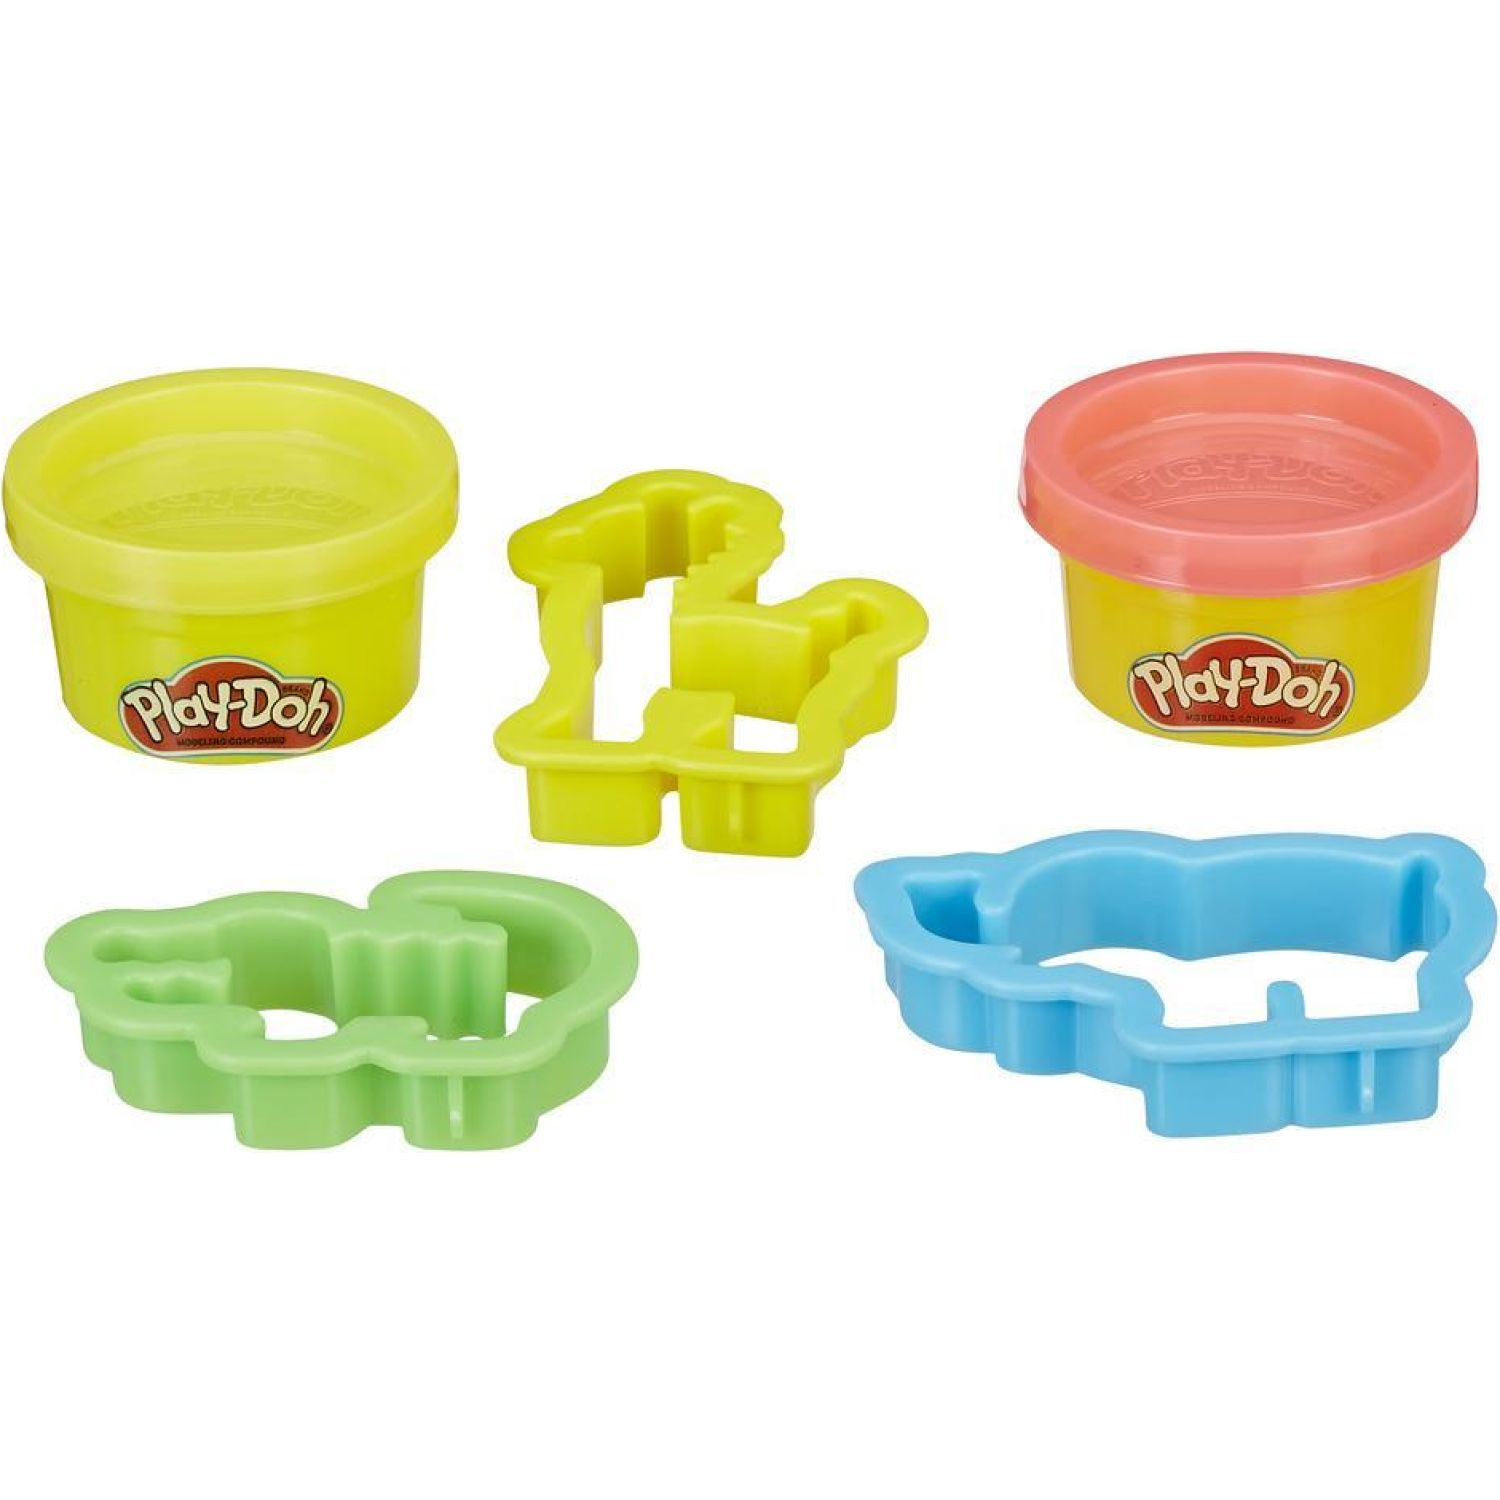 PLAY-DOH pd project storm animal shapes Varios Palitos para moldear y esculturas